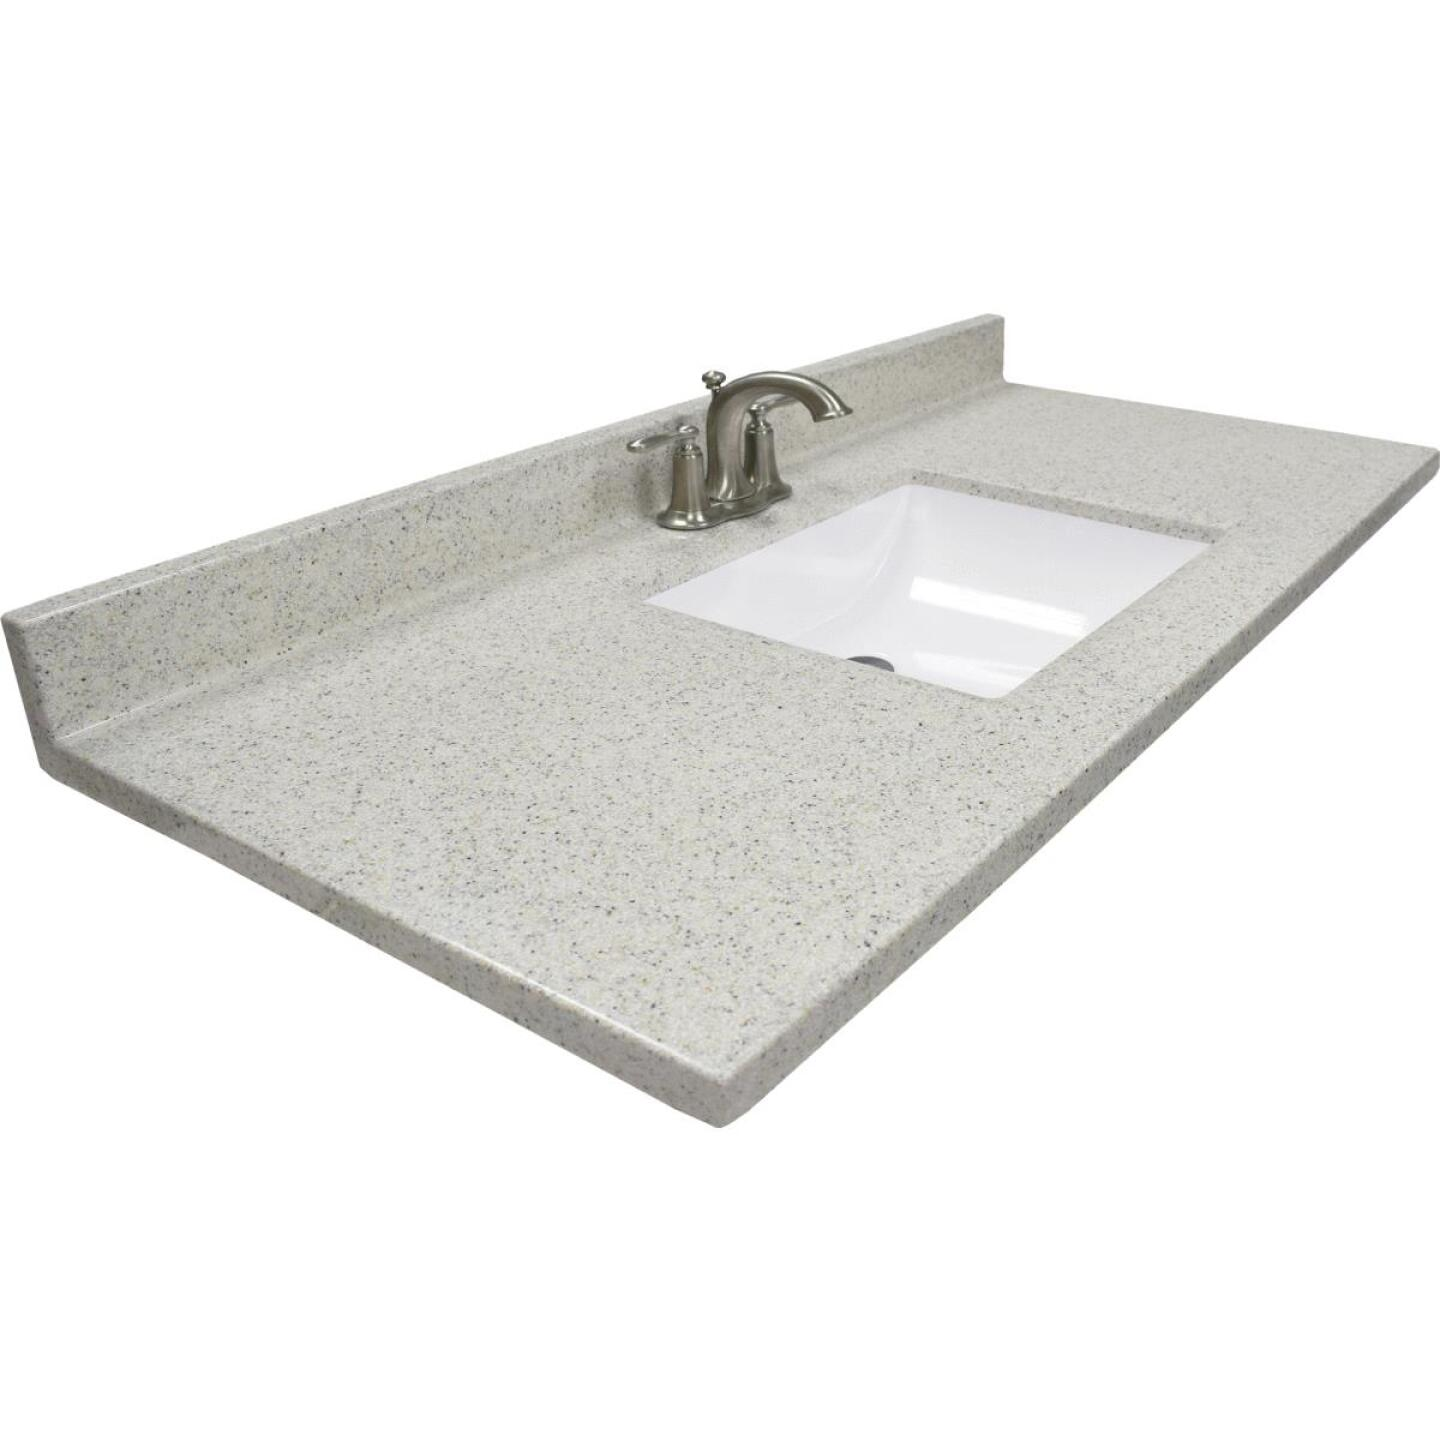 Modular Vanity Tops 49 In. W x 22 In. D Dune Cultured Marble Vanity Top with Rectangular Wave Bowl Image 1